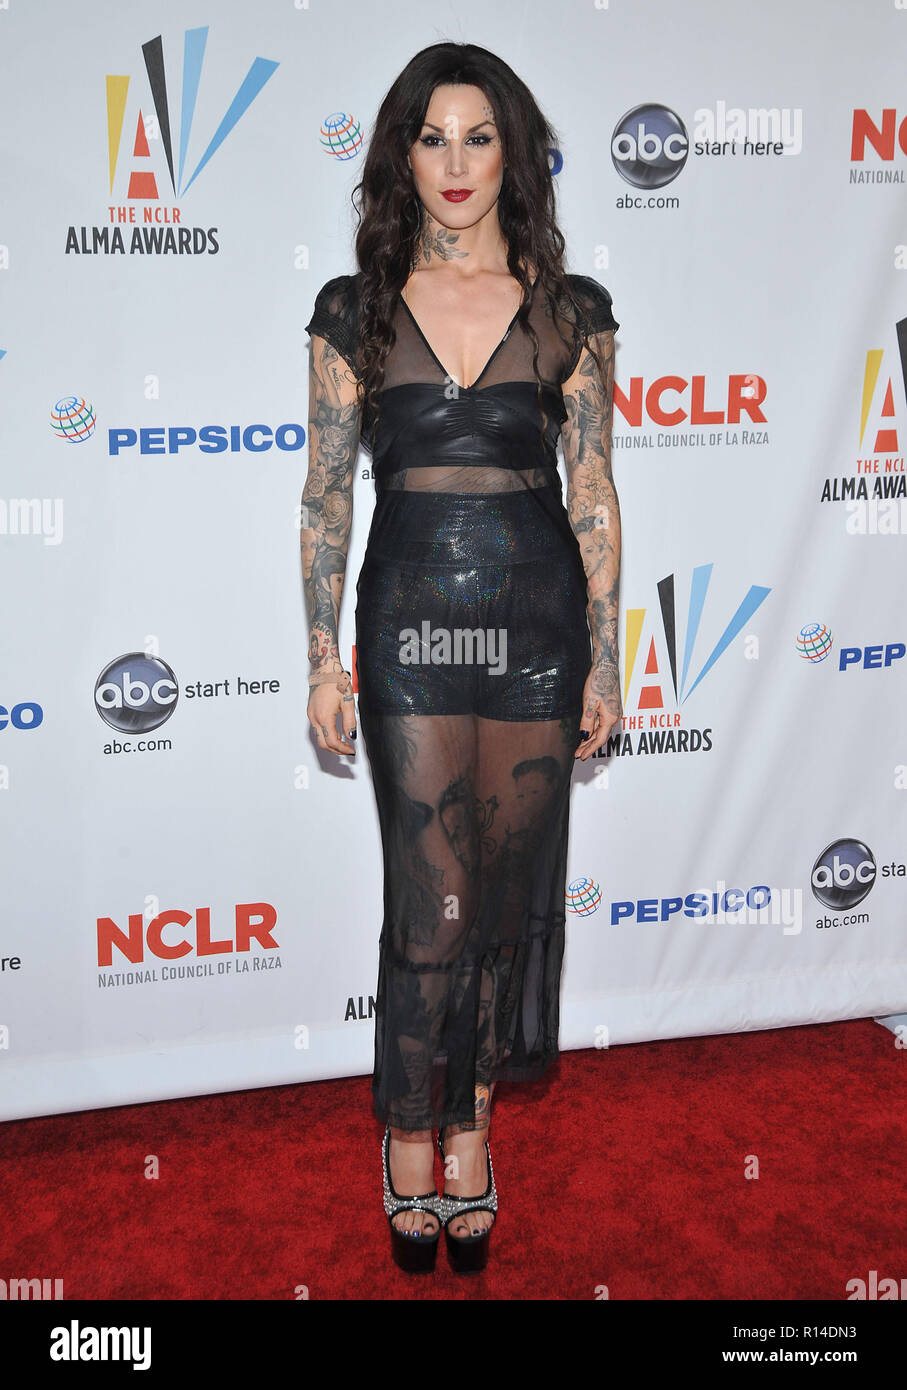 Kat Von D 2009 Alma Awards At The Royce Hall In Los Angeles